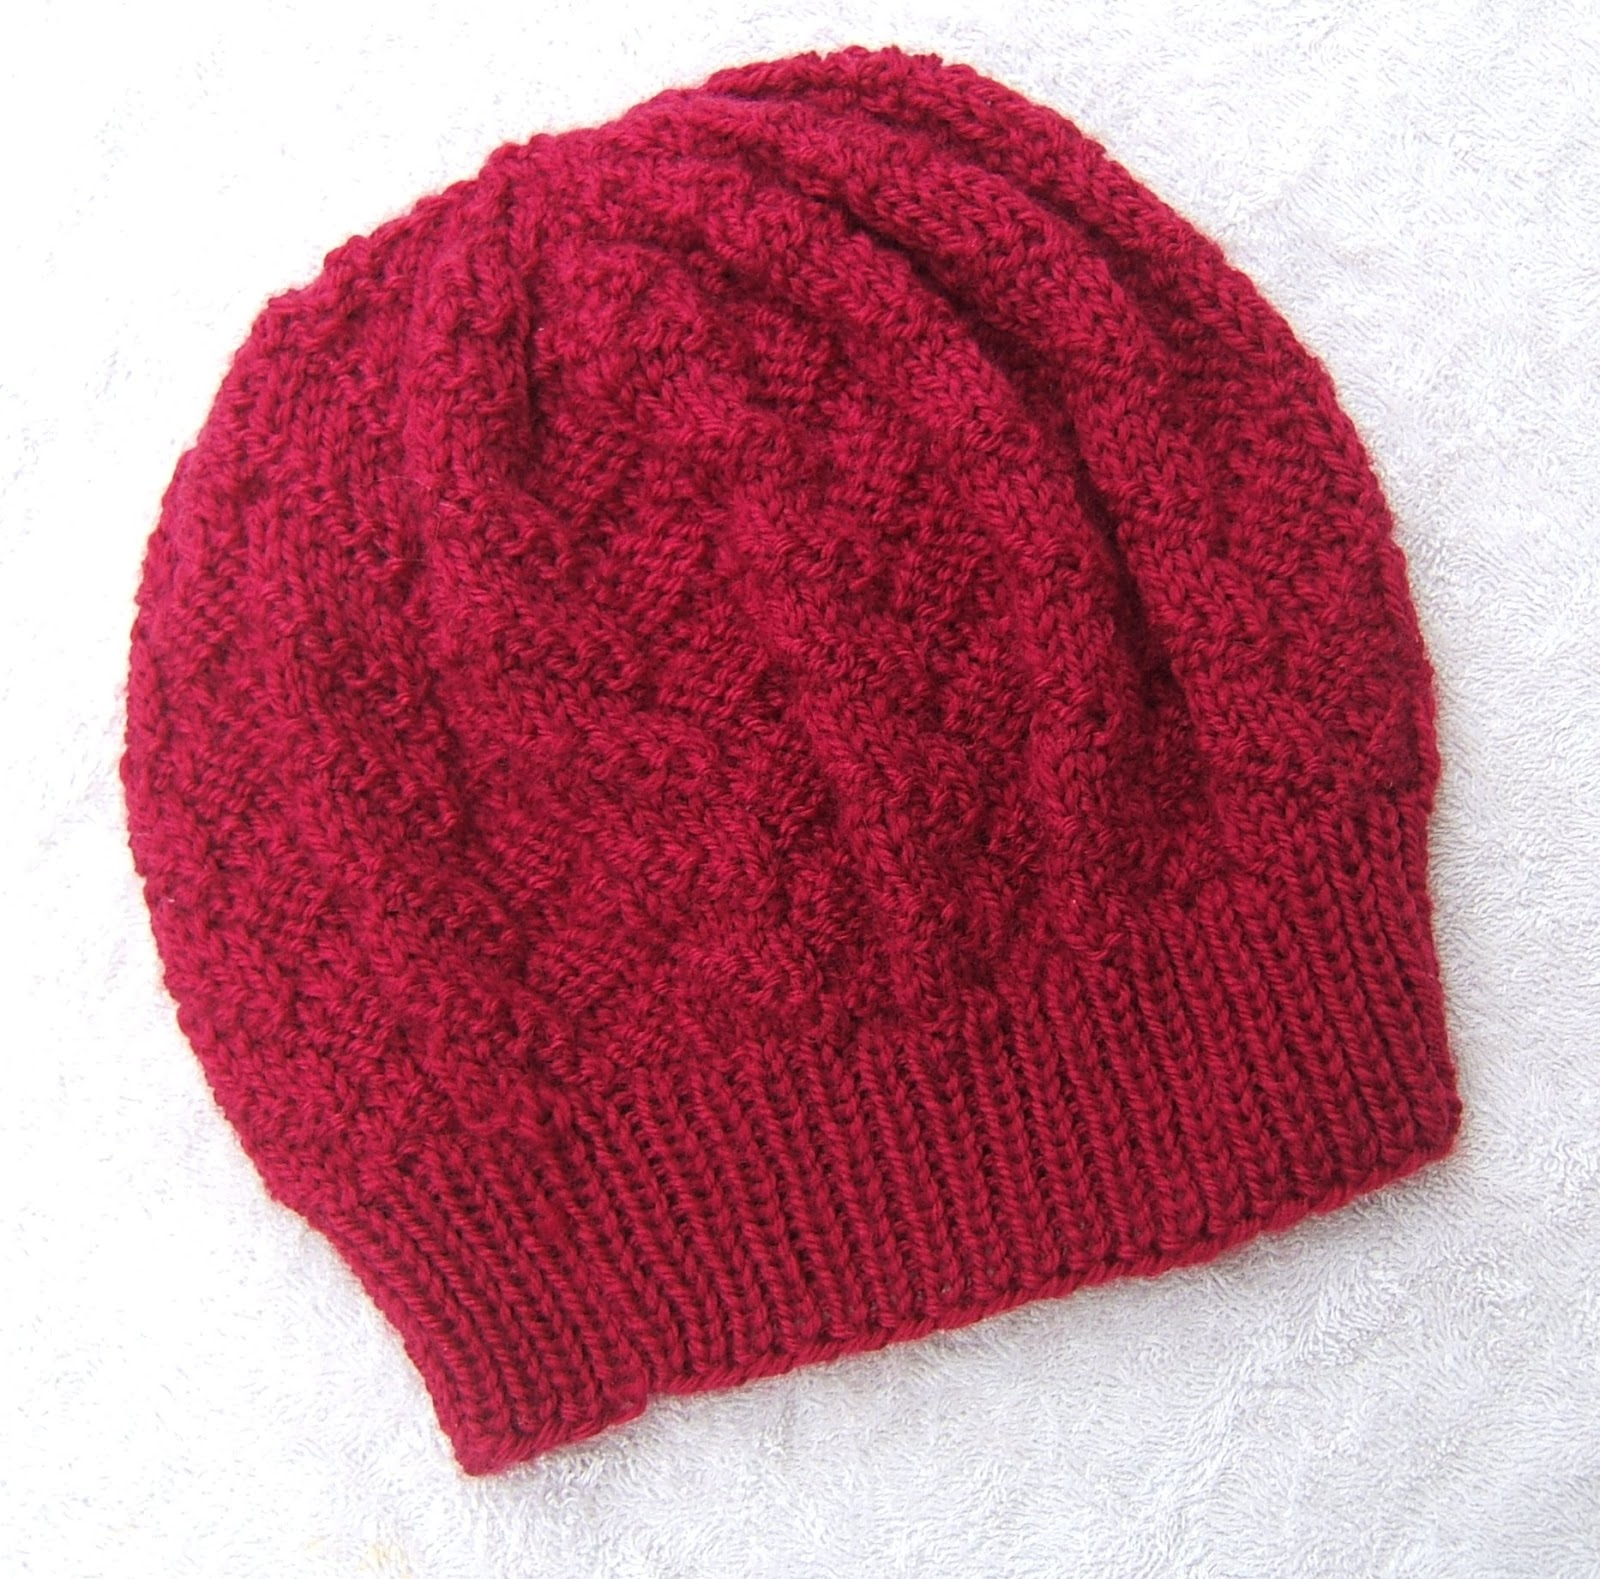 Knitting Patterns For Hats Using Circular Needles : aussie knitting threads: slouchy hats